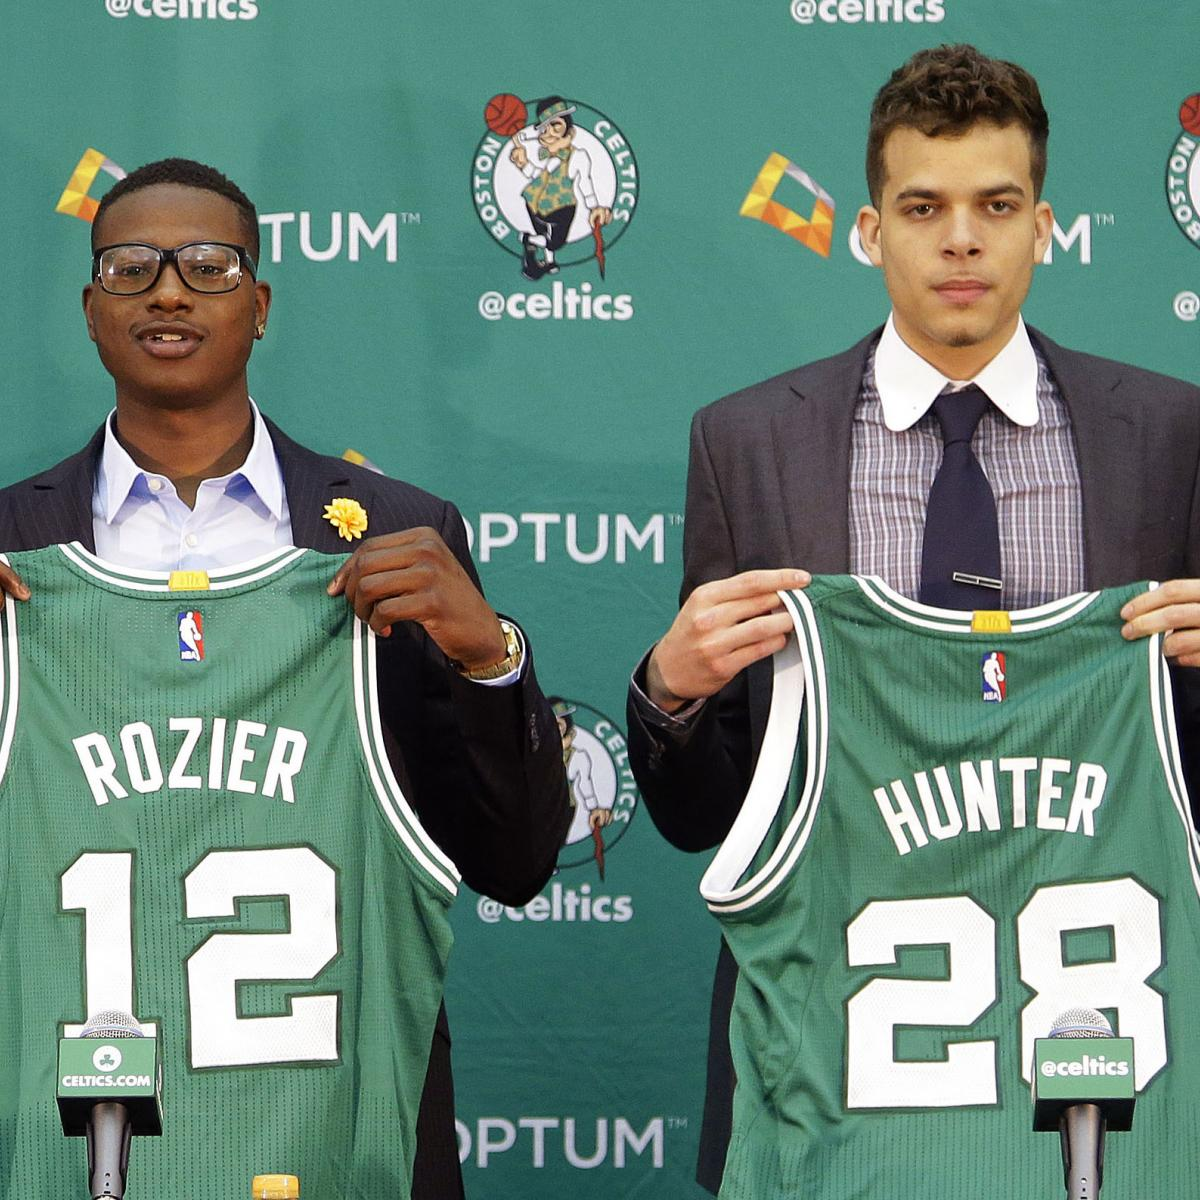 What to Expect from R.J. Hunter   Terry Rozier s Rookie Seasons with Celtics   f4d52ca42